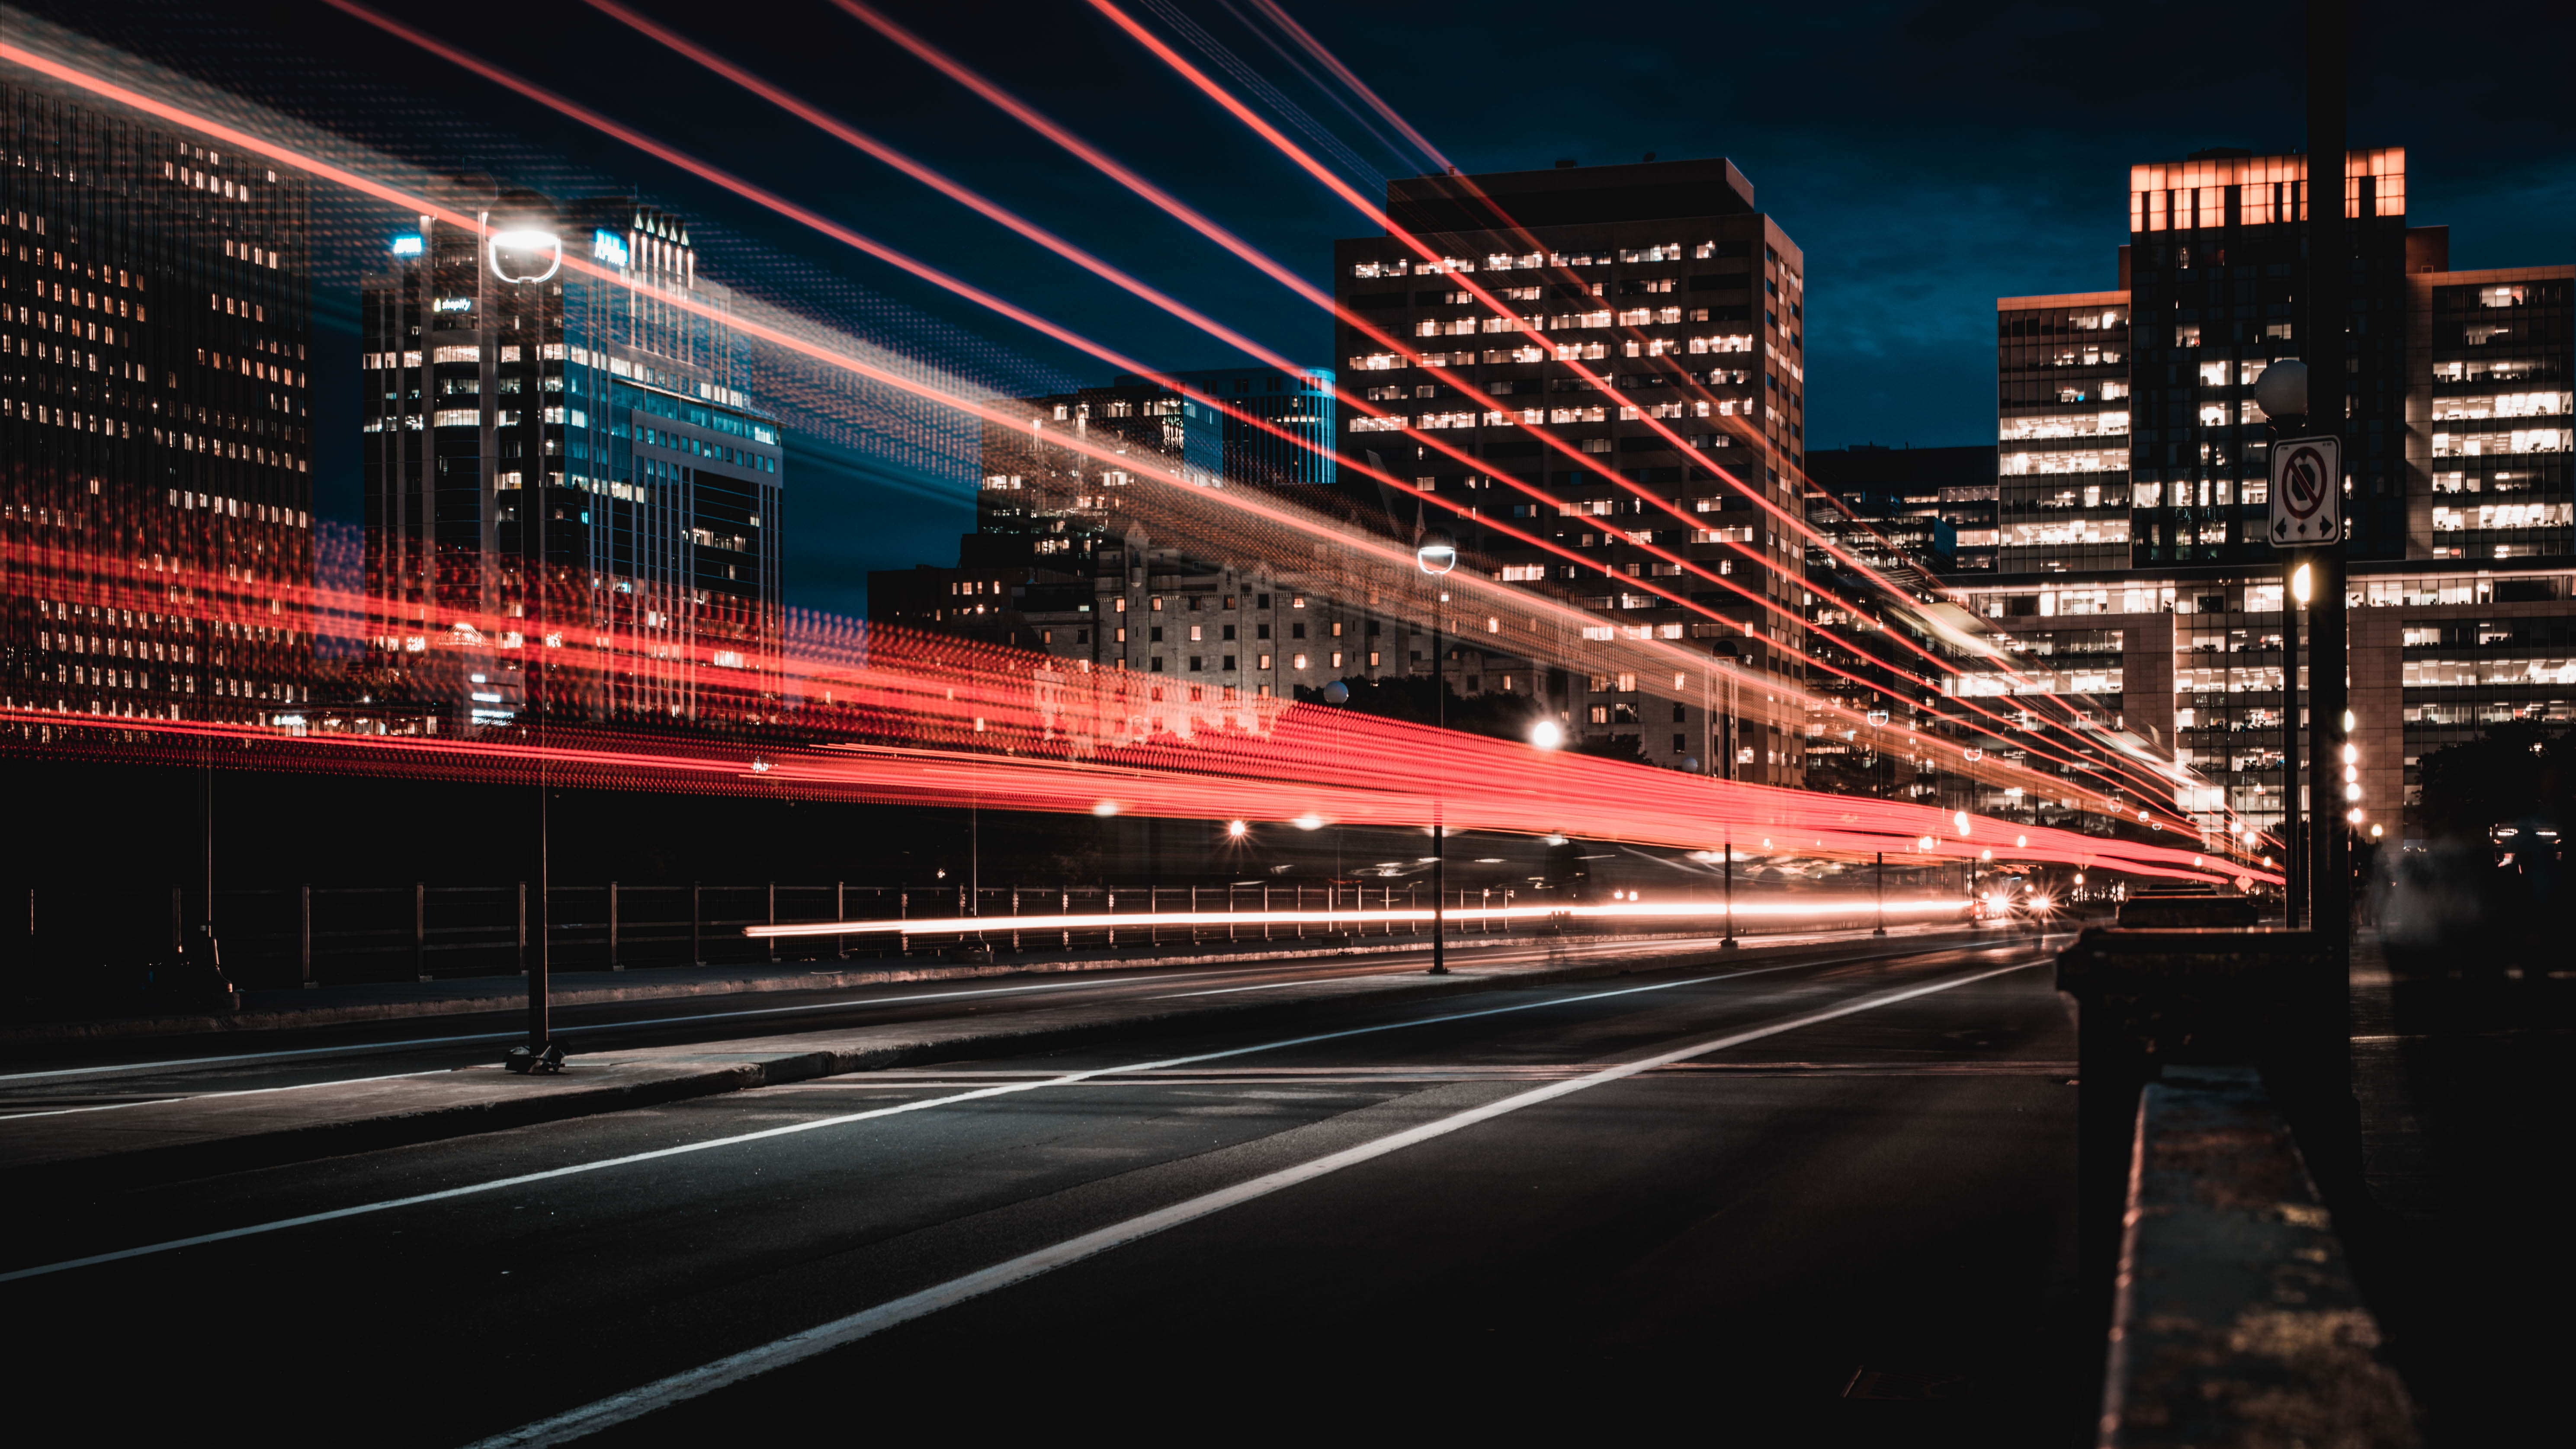 A long-exposure shot of a road in Ottawa with red light trails from the passing cars